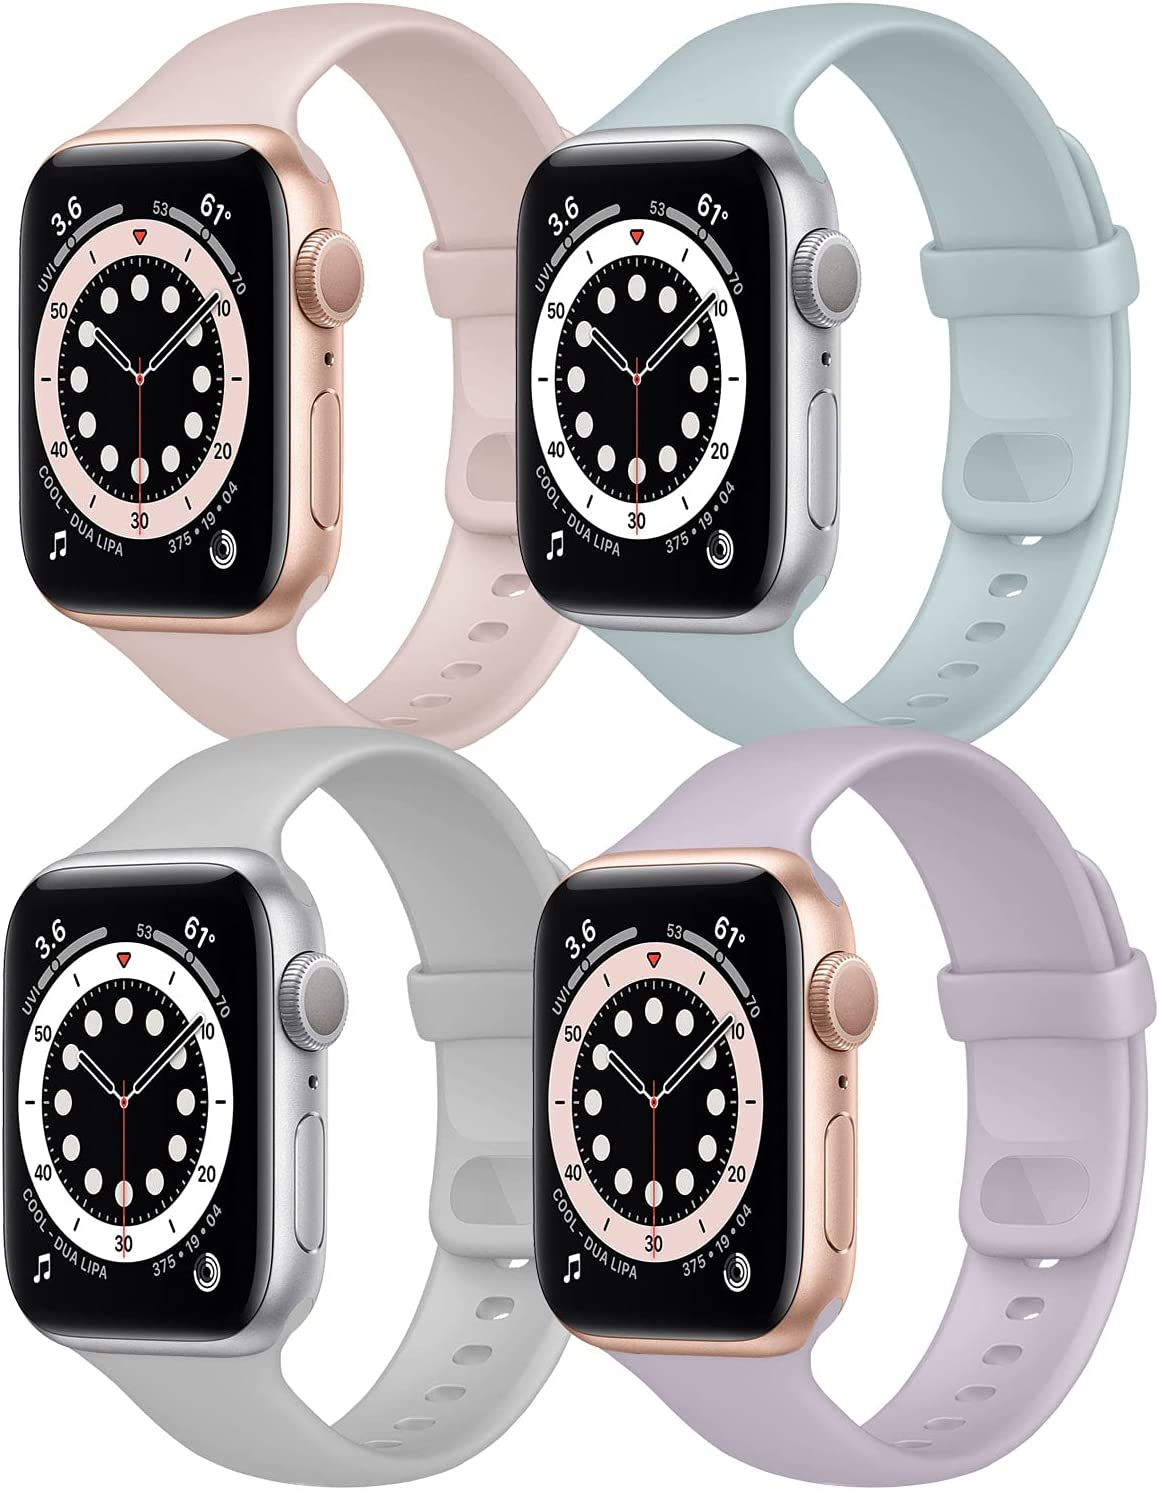 Hotflow 4 Pack Compatible with Apple Watch Bands 38mm 40mm for Women Men,Soft Silicone Sport Replacement Strap Compatible for iWatch Series SE 6 5 4 3 2 1(Lavender/Pink Sand/Turquoise/Fog,Size-S/M)